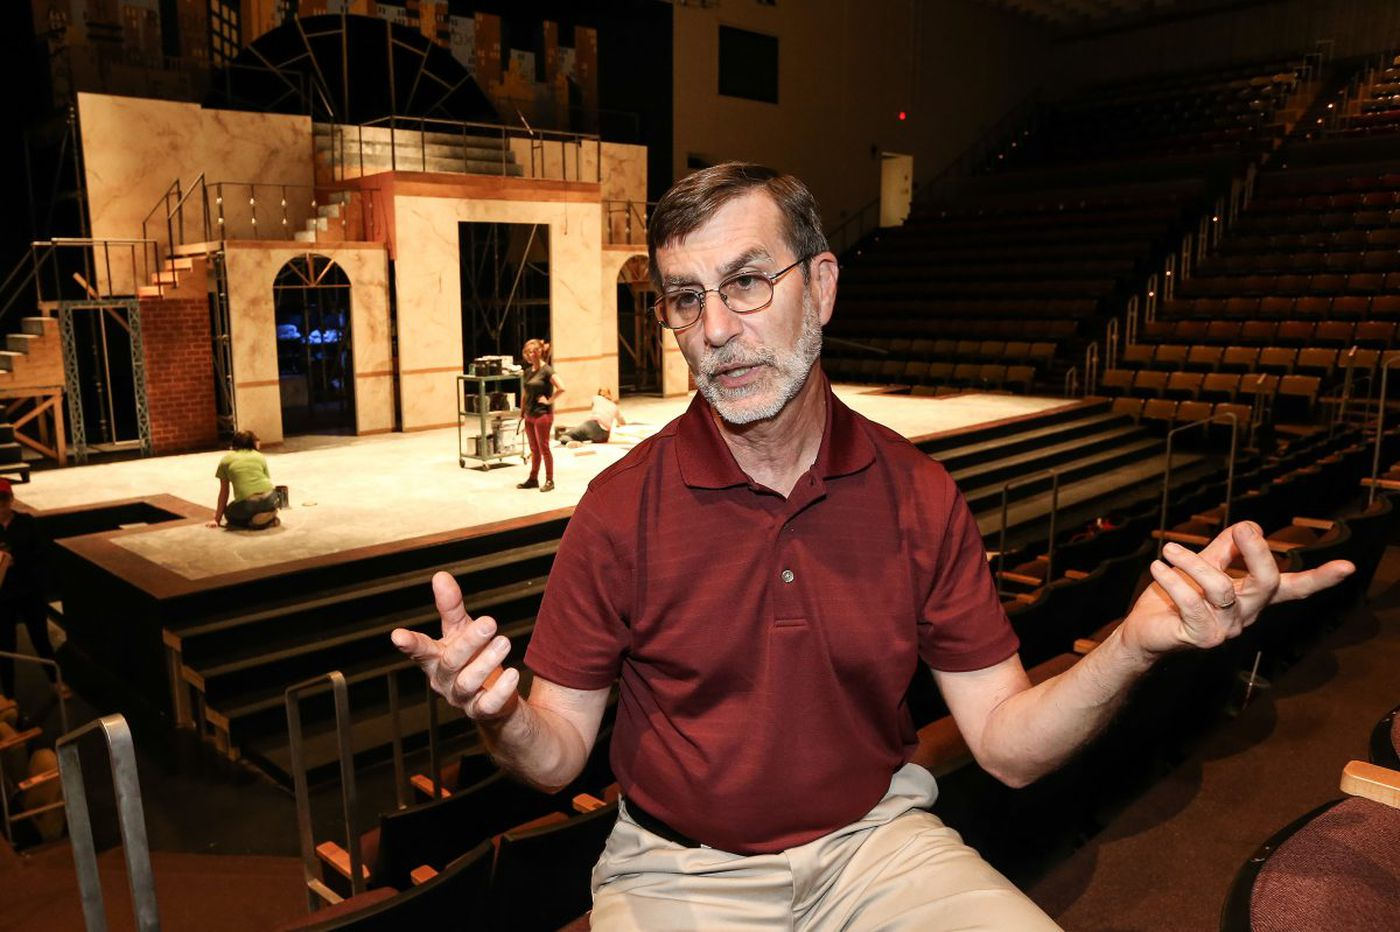 Upper Darby Summer Stage: The theater Tina Fey got her start introduces countless kids to the arts